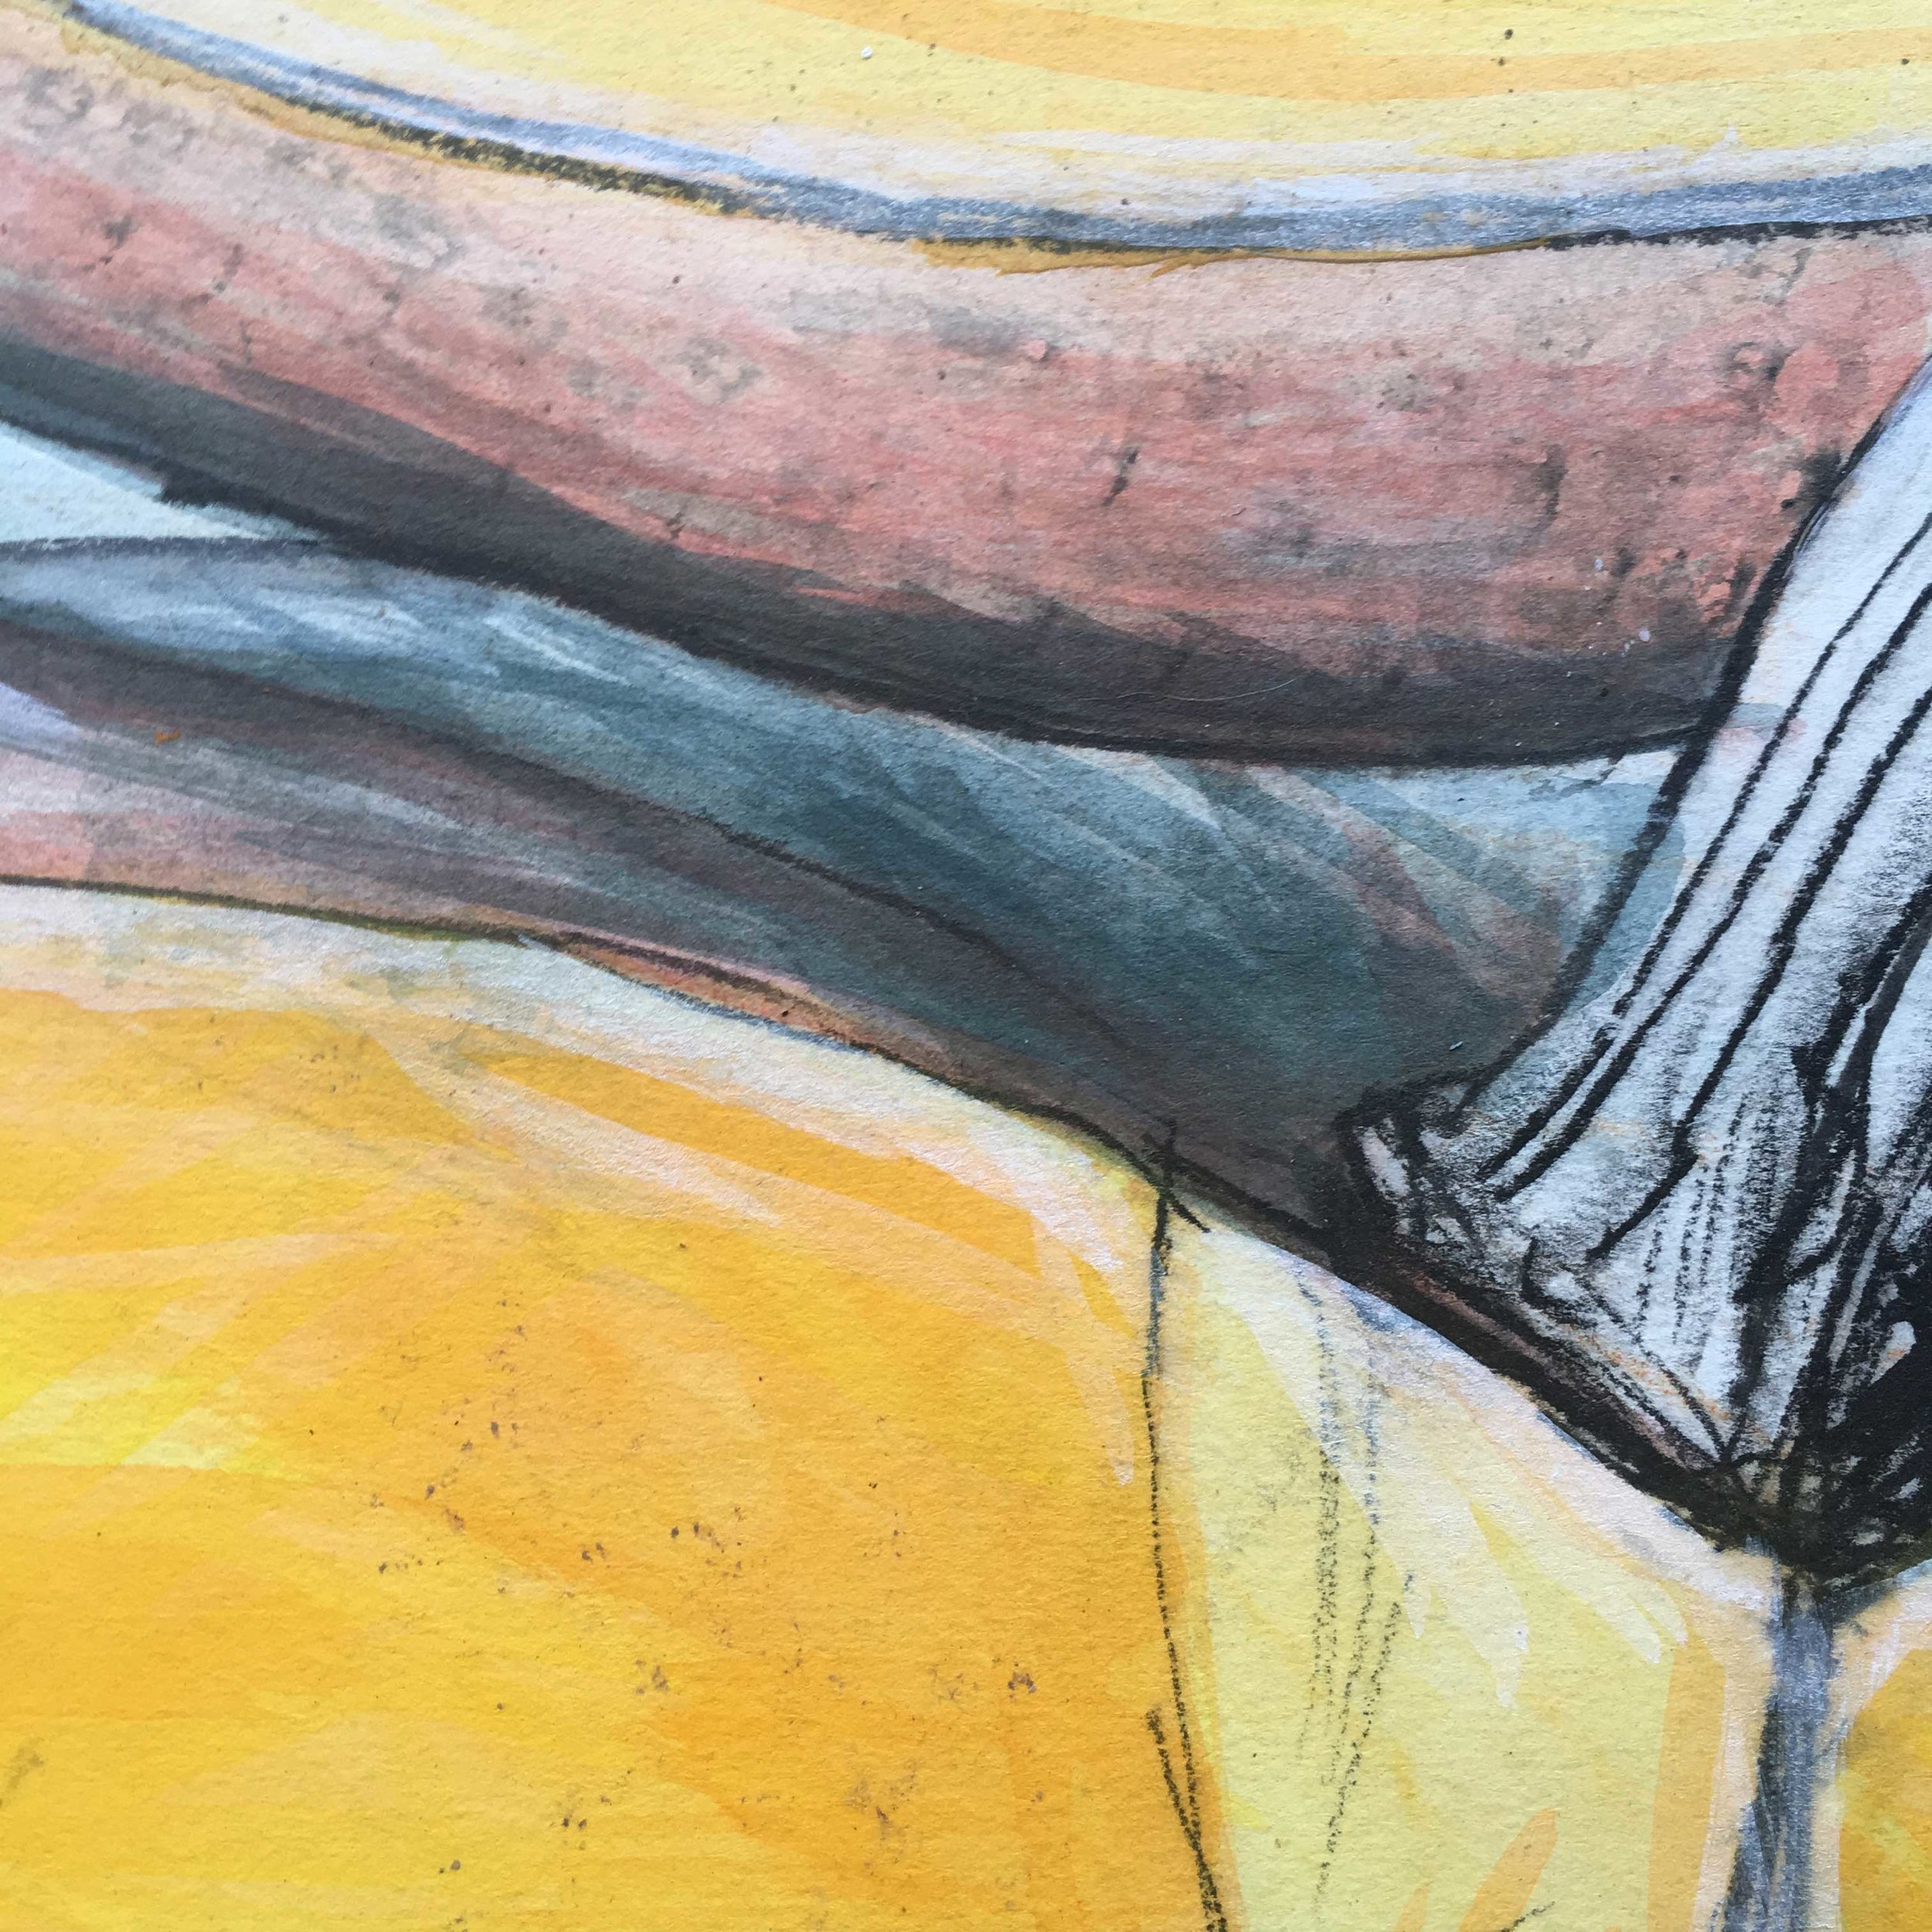 Pumpkin-drawing-detail.jpg